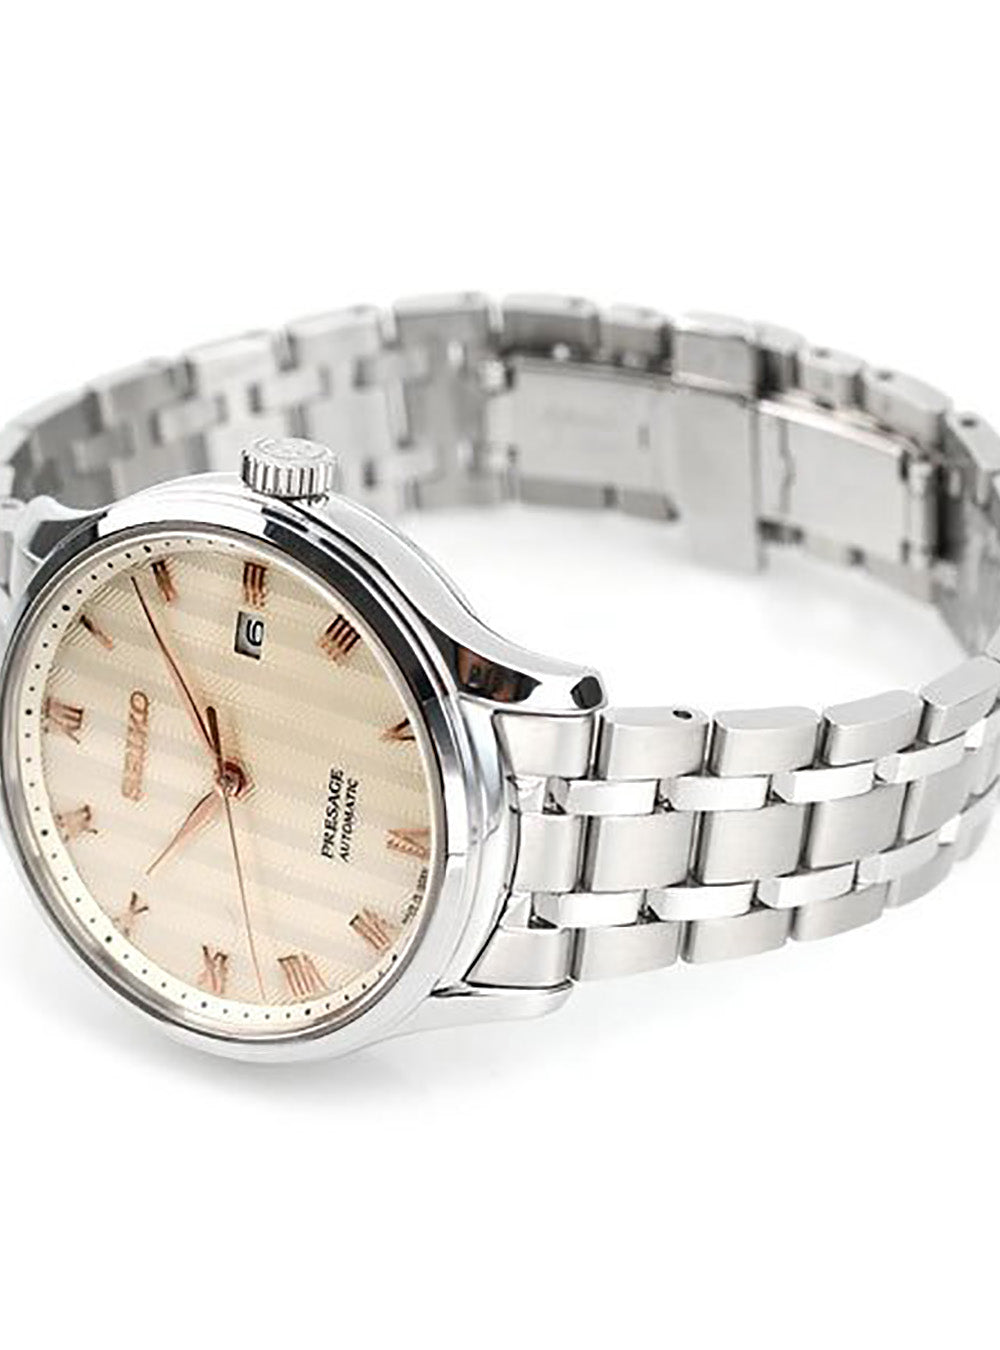 SEIKO PRESAGE MECHANICAL JAPANESE GARDEN SARY185 MADE IN JAPAN MENS JDM